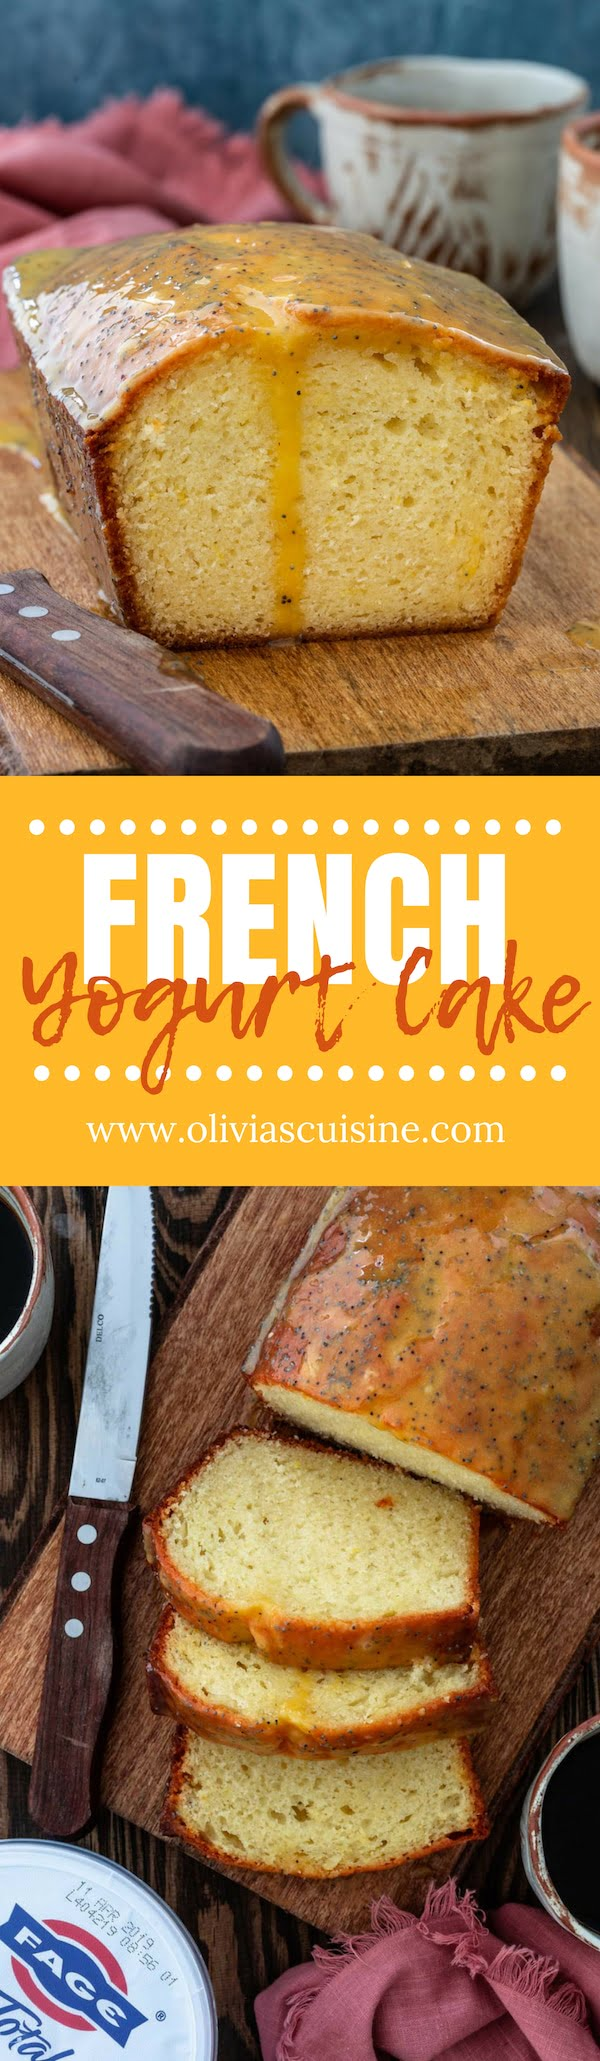 French Yogurt Cake | www.oliviascuisine.com | No need for a fancy pastry school degree to master this delicious French Yogurt Cake! Just like the ones the grandmas in France make: moist and fluffy, yet incredibly simple. (Recipe and food photography by @oliviascuisine.) #yogurt #cake #baking #yogurtcake